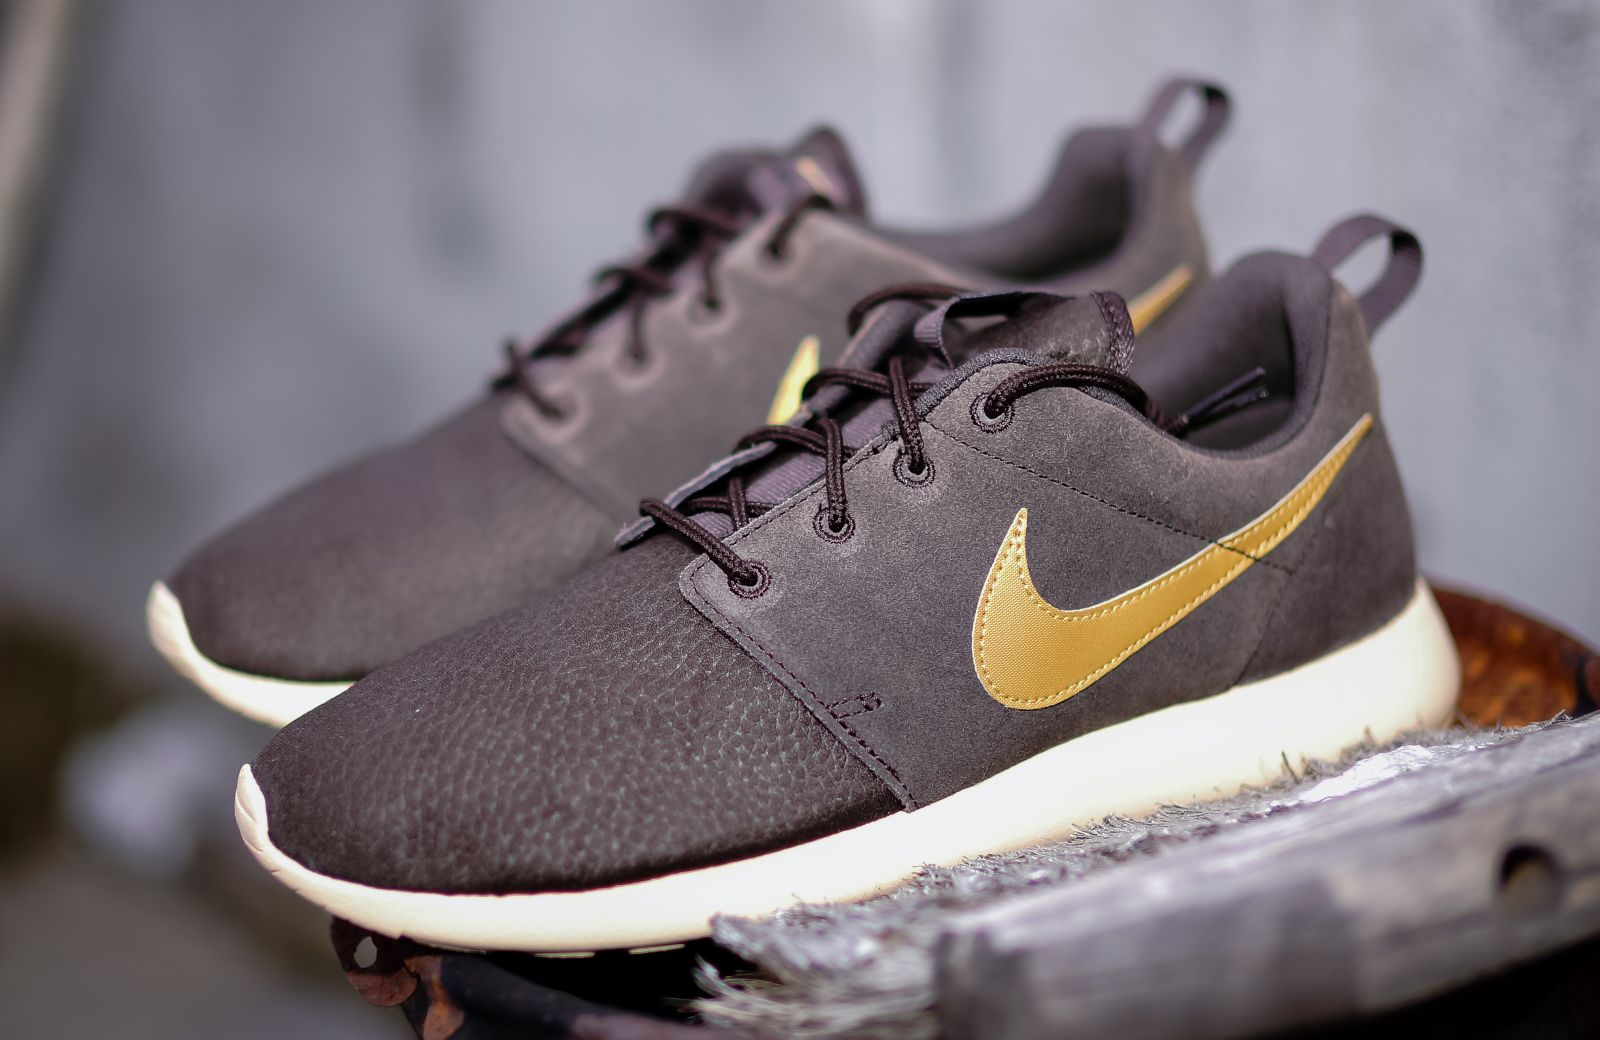 Burgundy suede and metallic gold for this new Roshe Run.